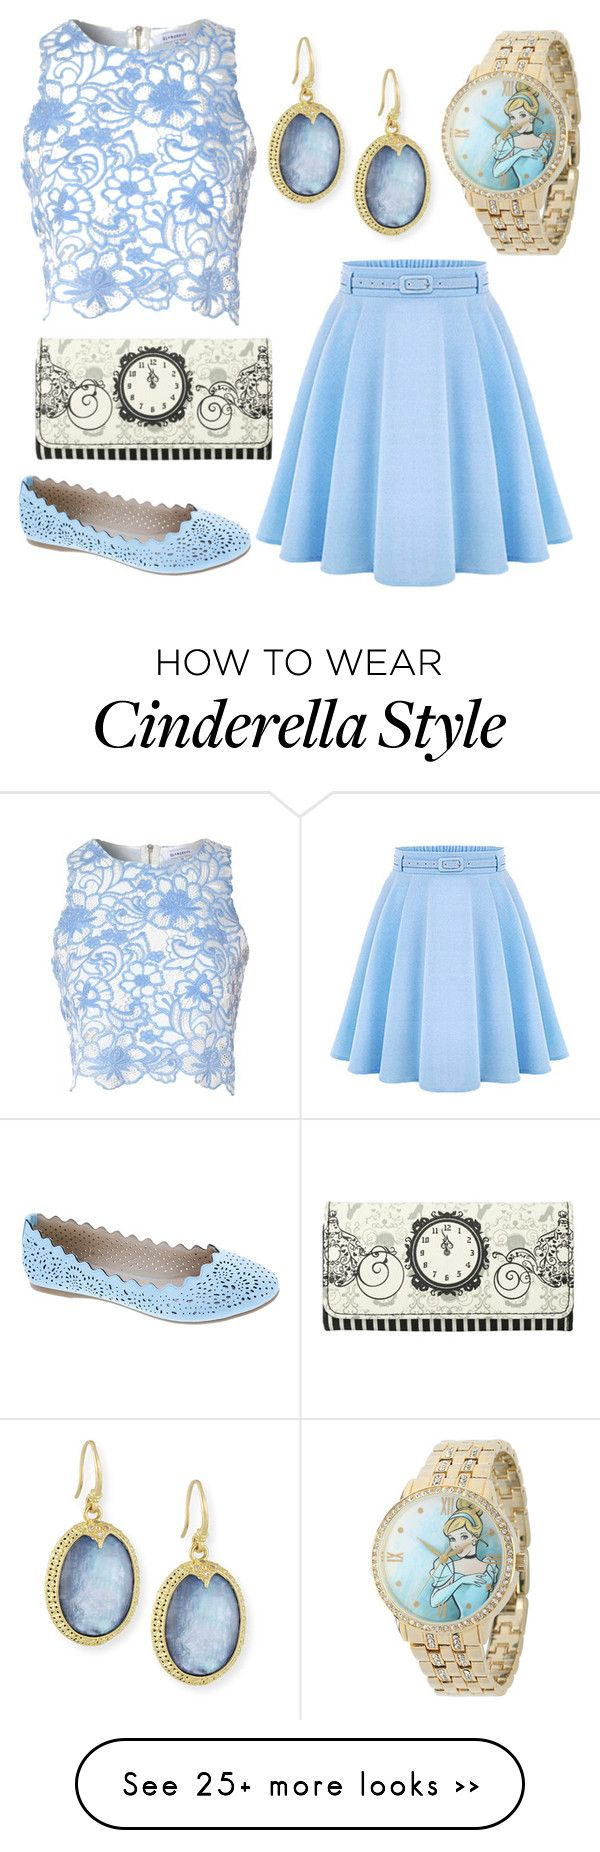 """Disneybound: Cinderella"" by swagshark on Polyvore featuring Armenta, True Decadence, Disney and Machi"